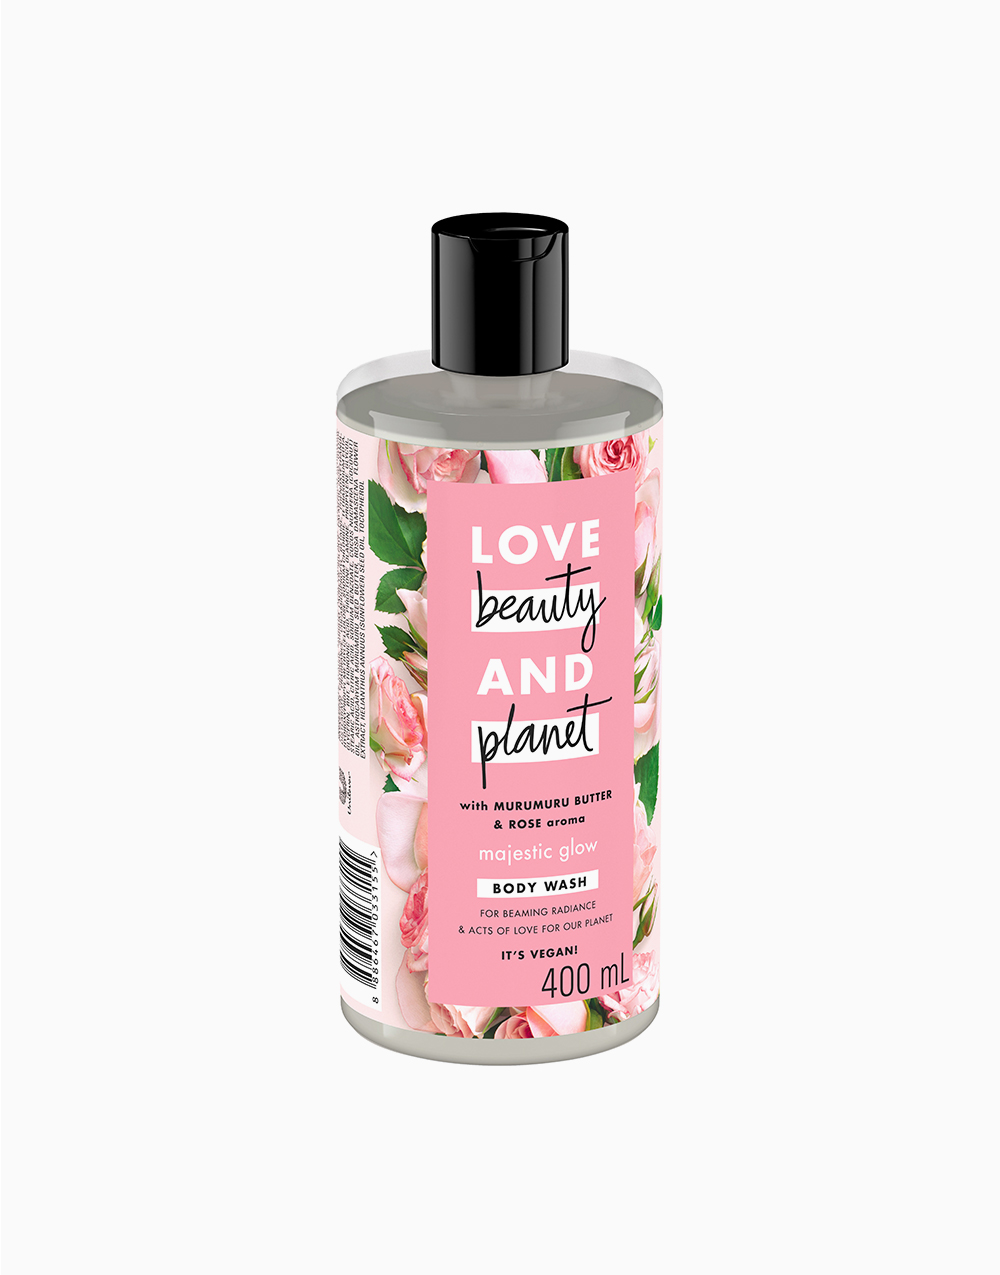 Love Beauty And Planet Murumuru Butter & Rose Body Wash Majestic Glow (400ml) by Love Beauty and Planet